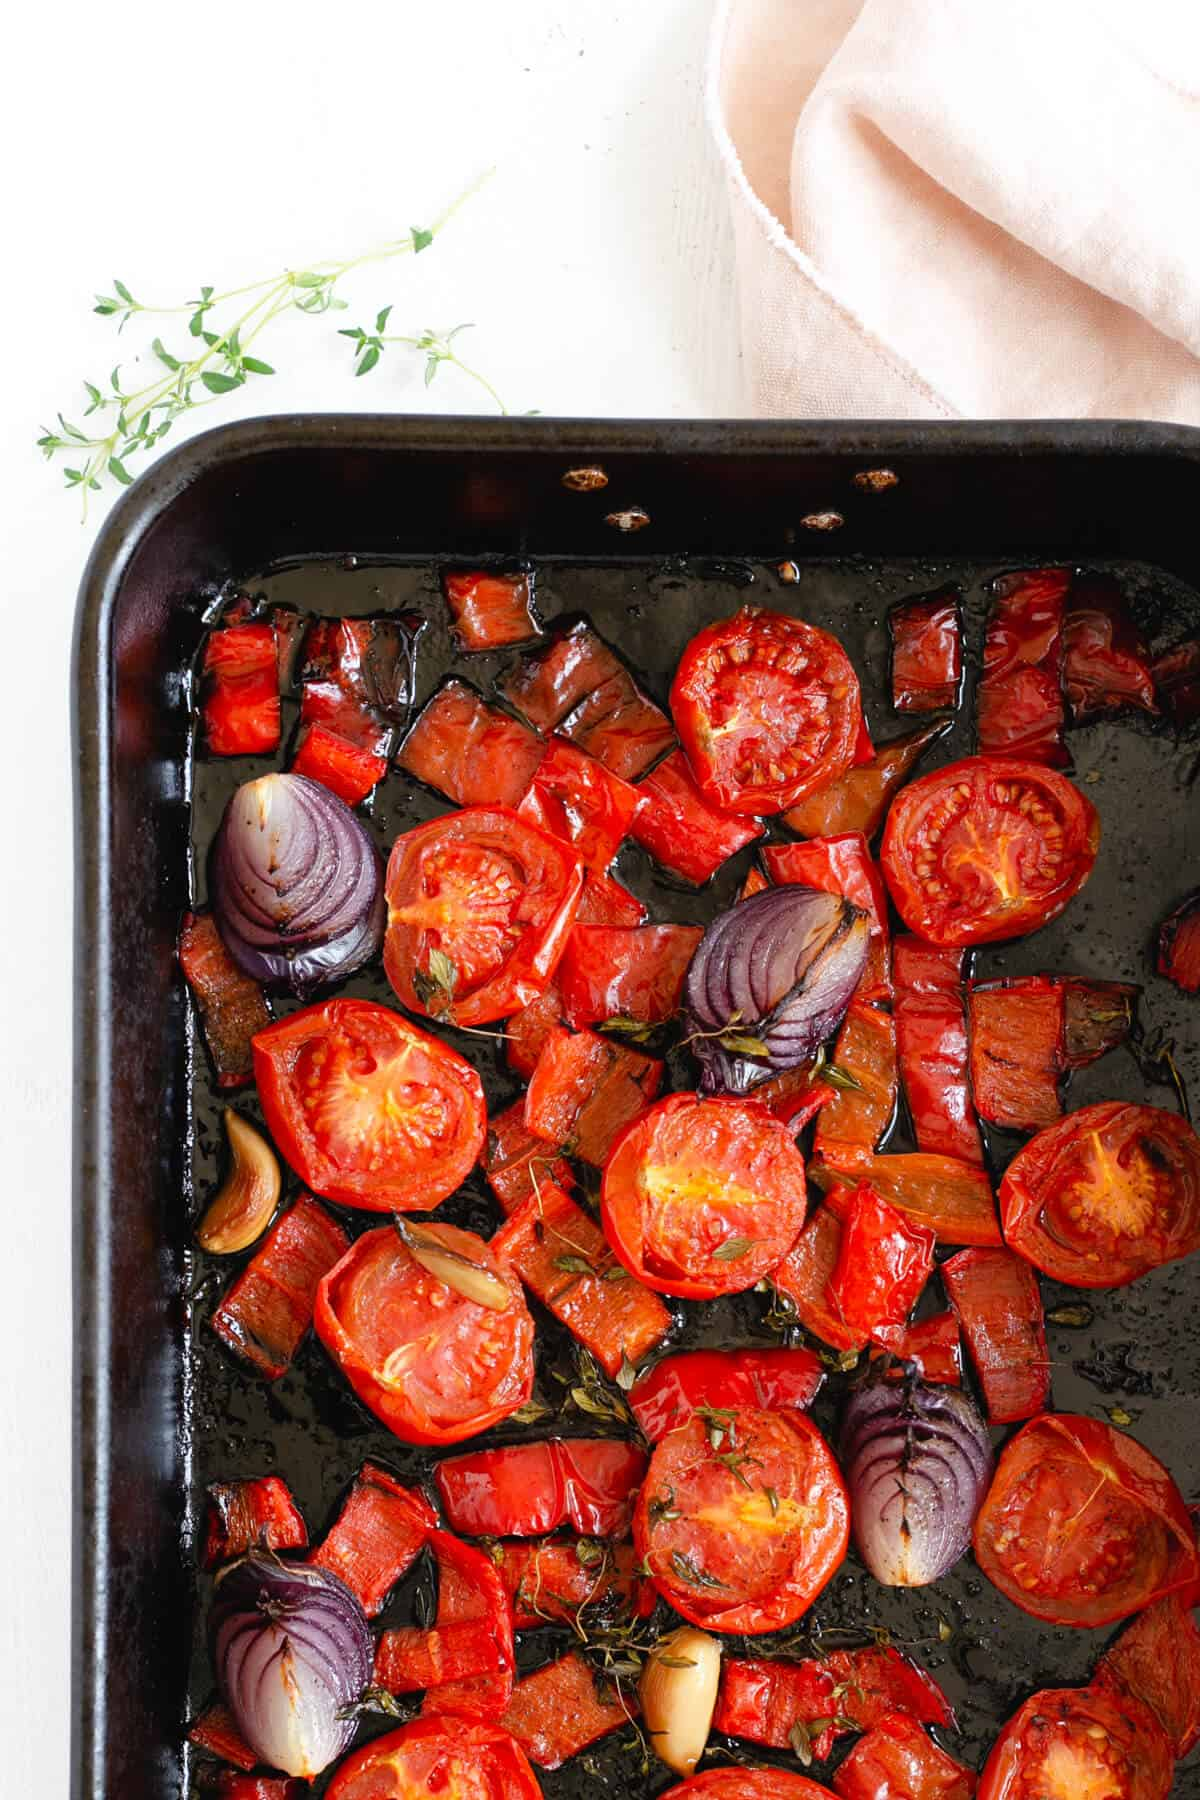 Roasted tomatoes, red peppers and red onions in a roasting tin